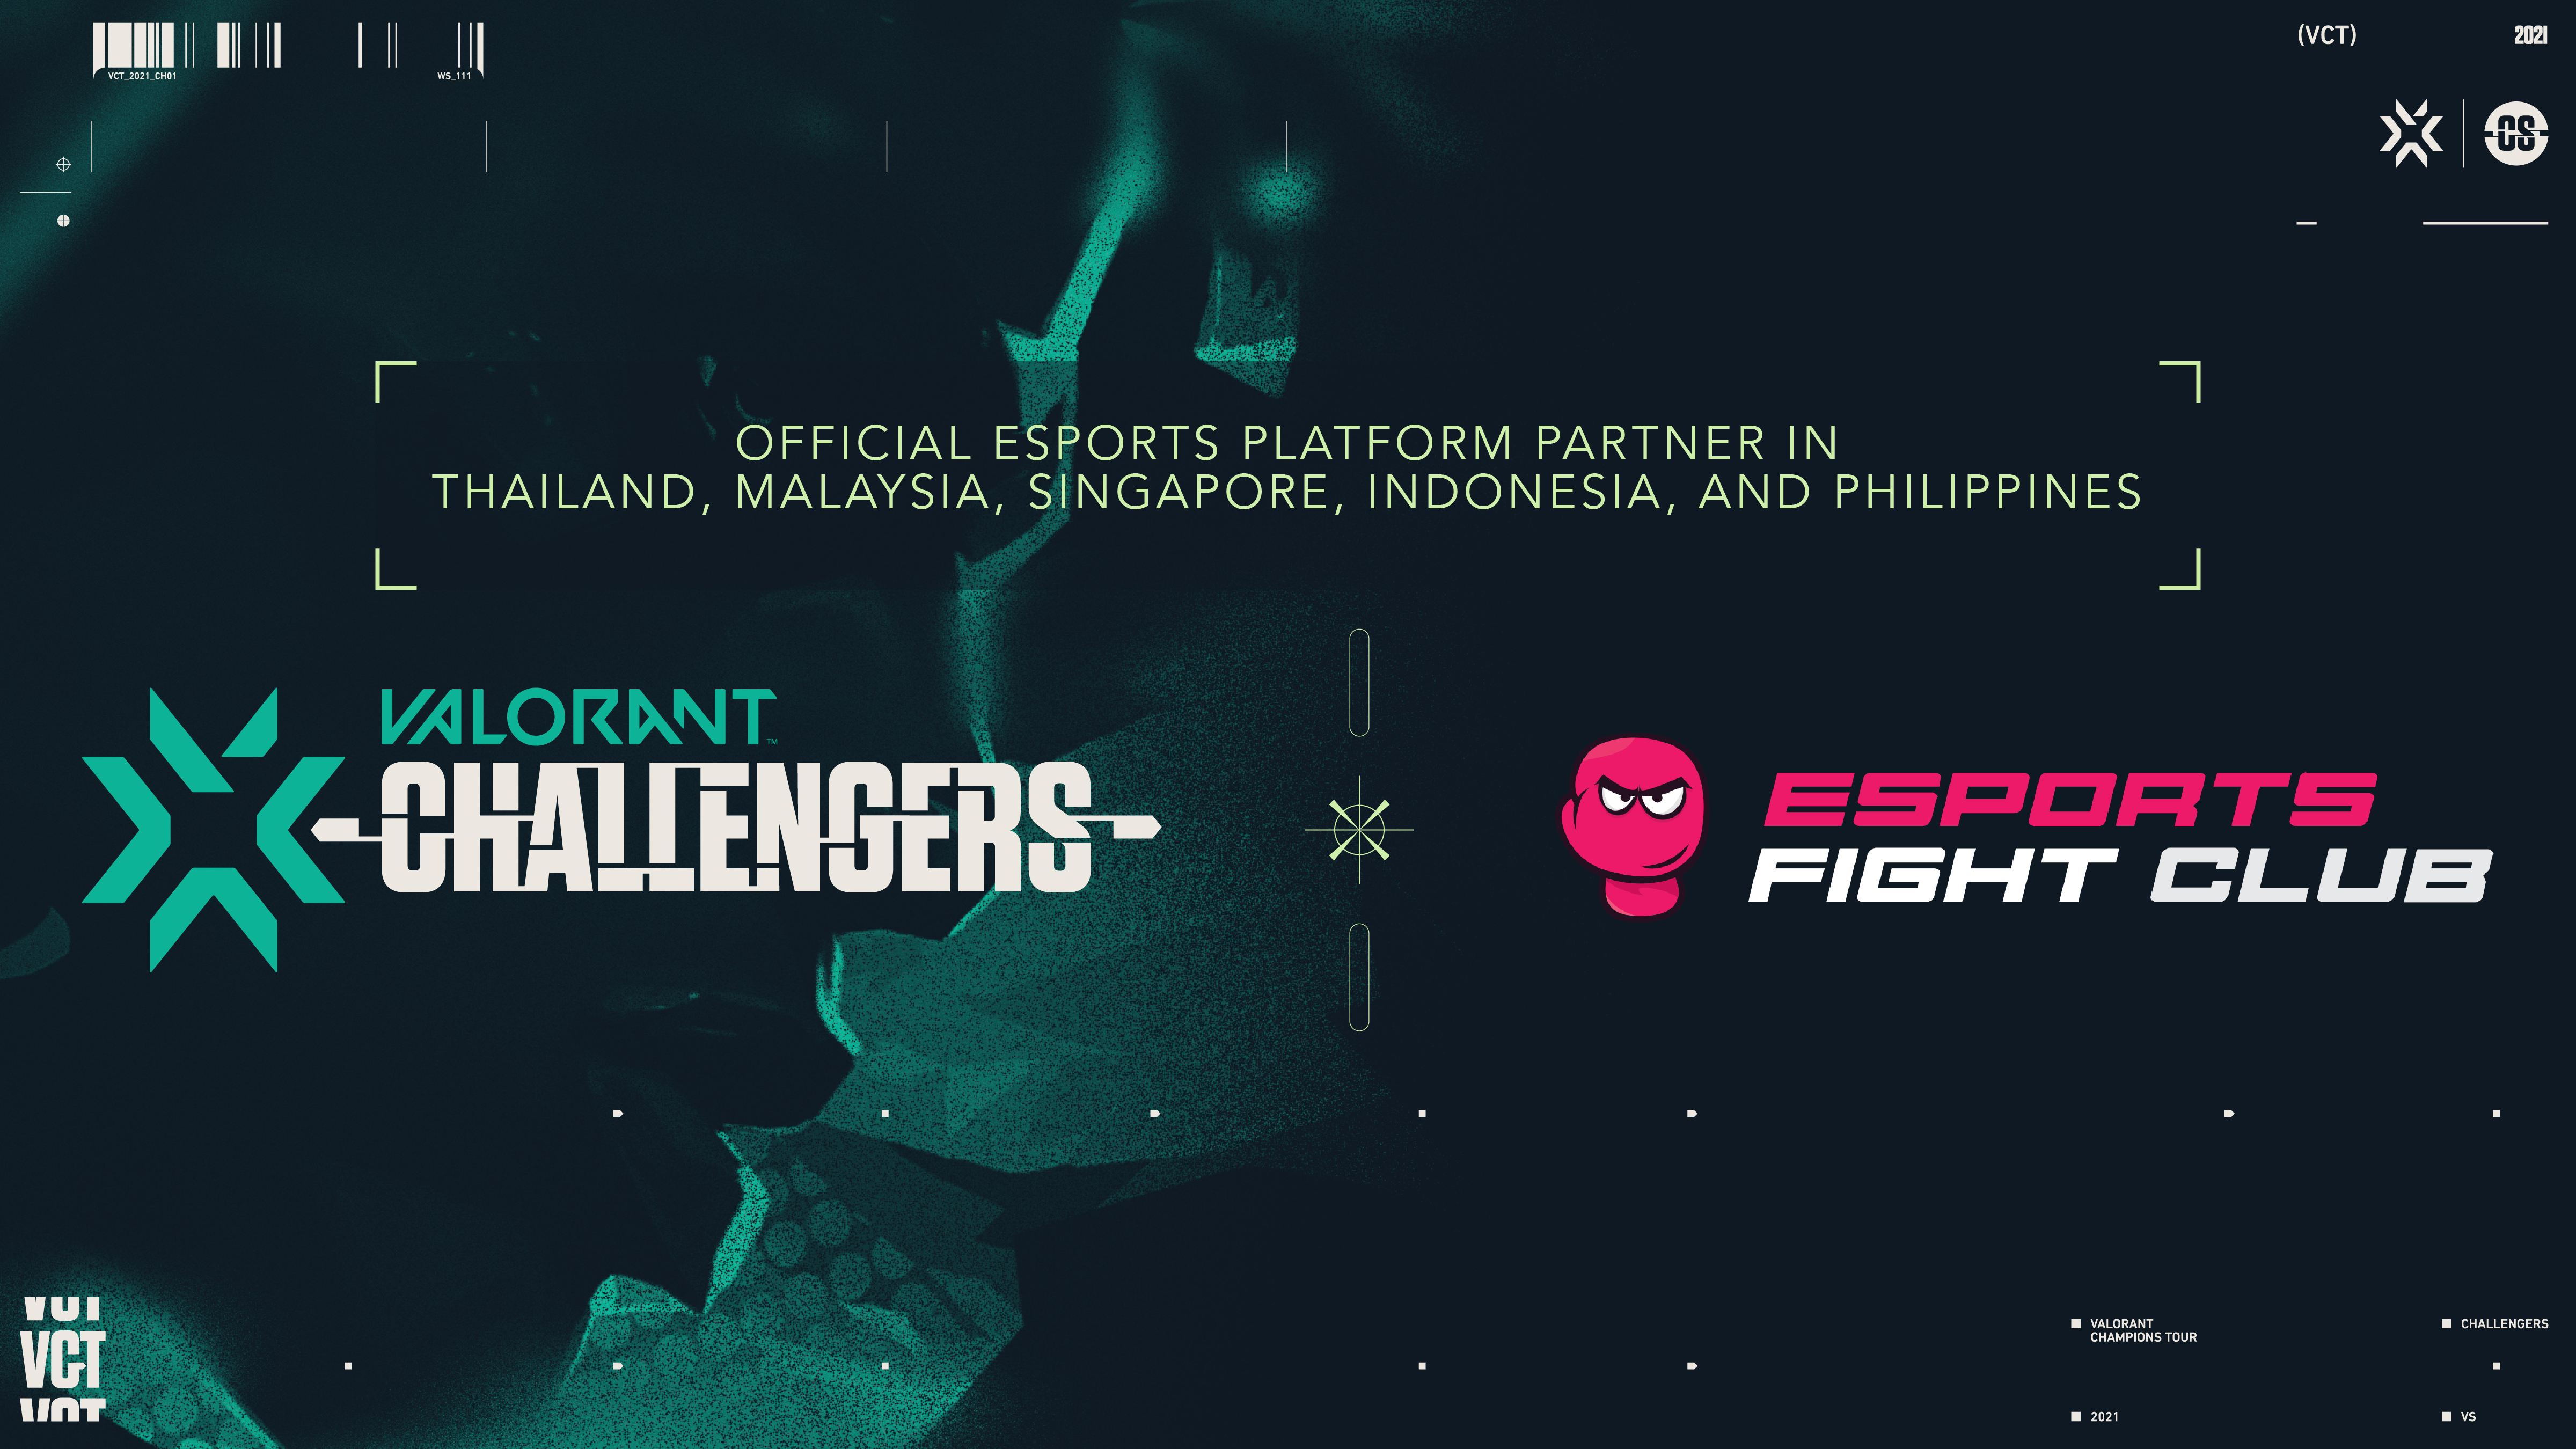 ESPORTS FIGHT CLUB, A VERASITY PLATFORM, PARTNERS WITH THE VALORANT CHAMPIONS TOUR 2021 IN SOUTHEAST ASIA TO DELIVER THE ULTIMATE GAMING EXPERIENCE